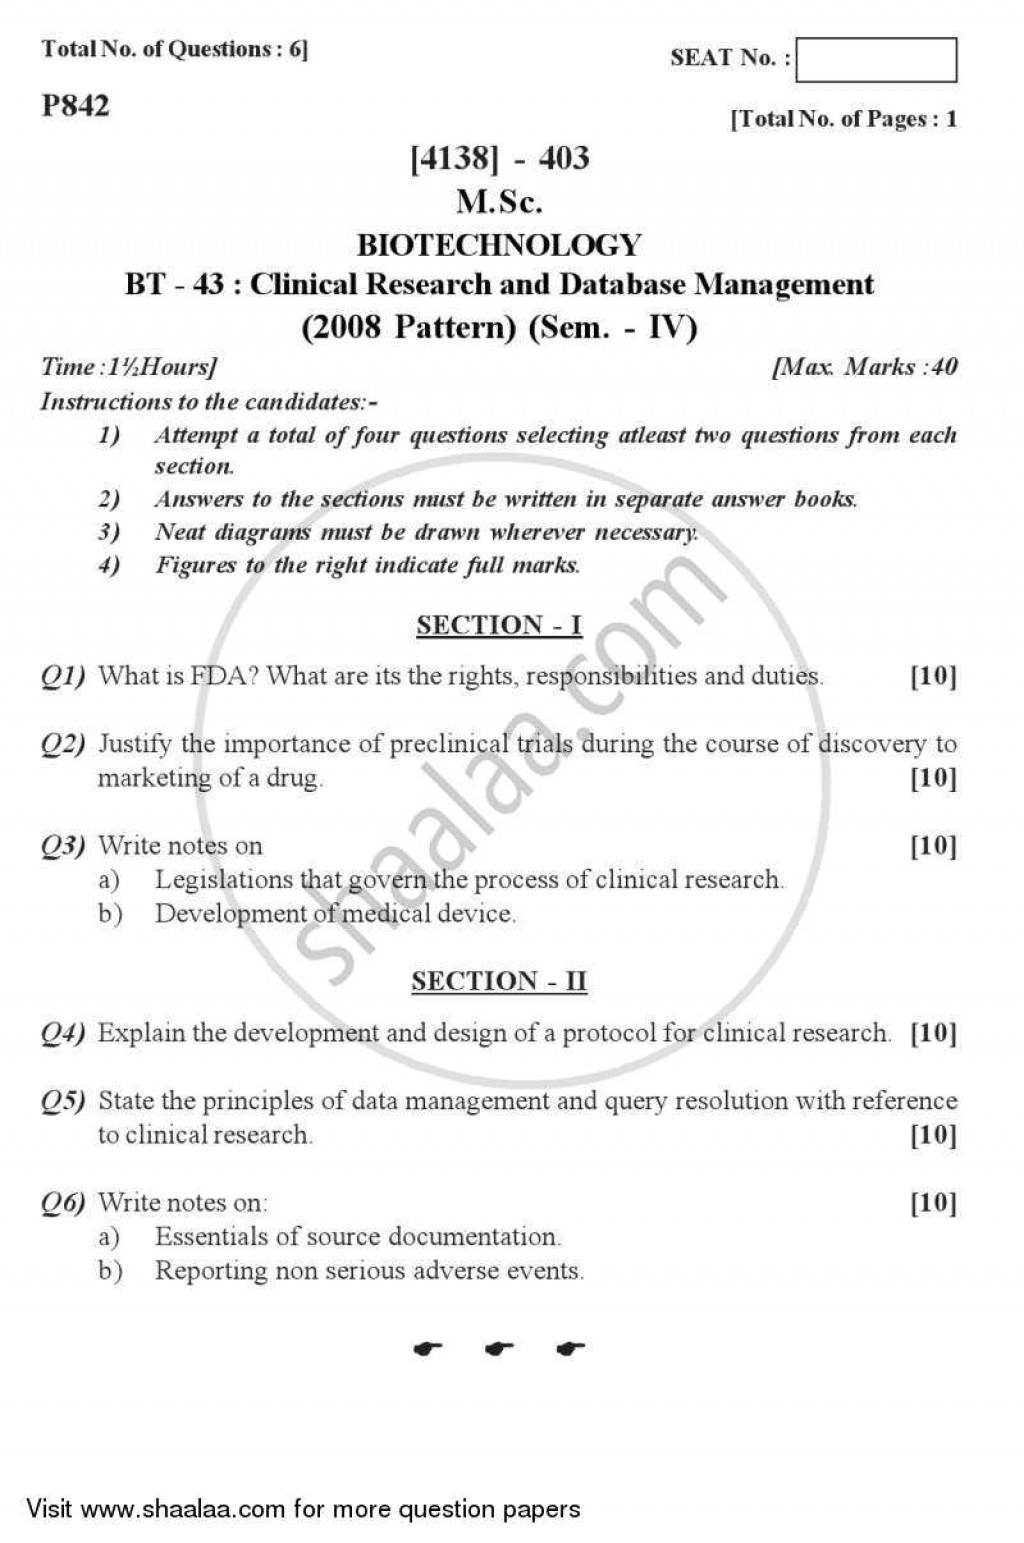 023 Research Paper Database University Of Pune Master Msc Clinical Management Biotech Semester 2012 25b9c0e3f87cb432992c22355b1608732 Sensational Ieee Papers On System Pdf Large